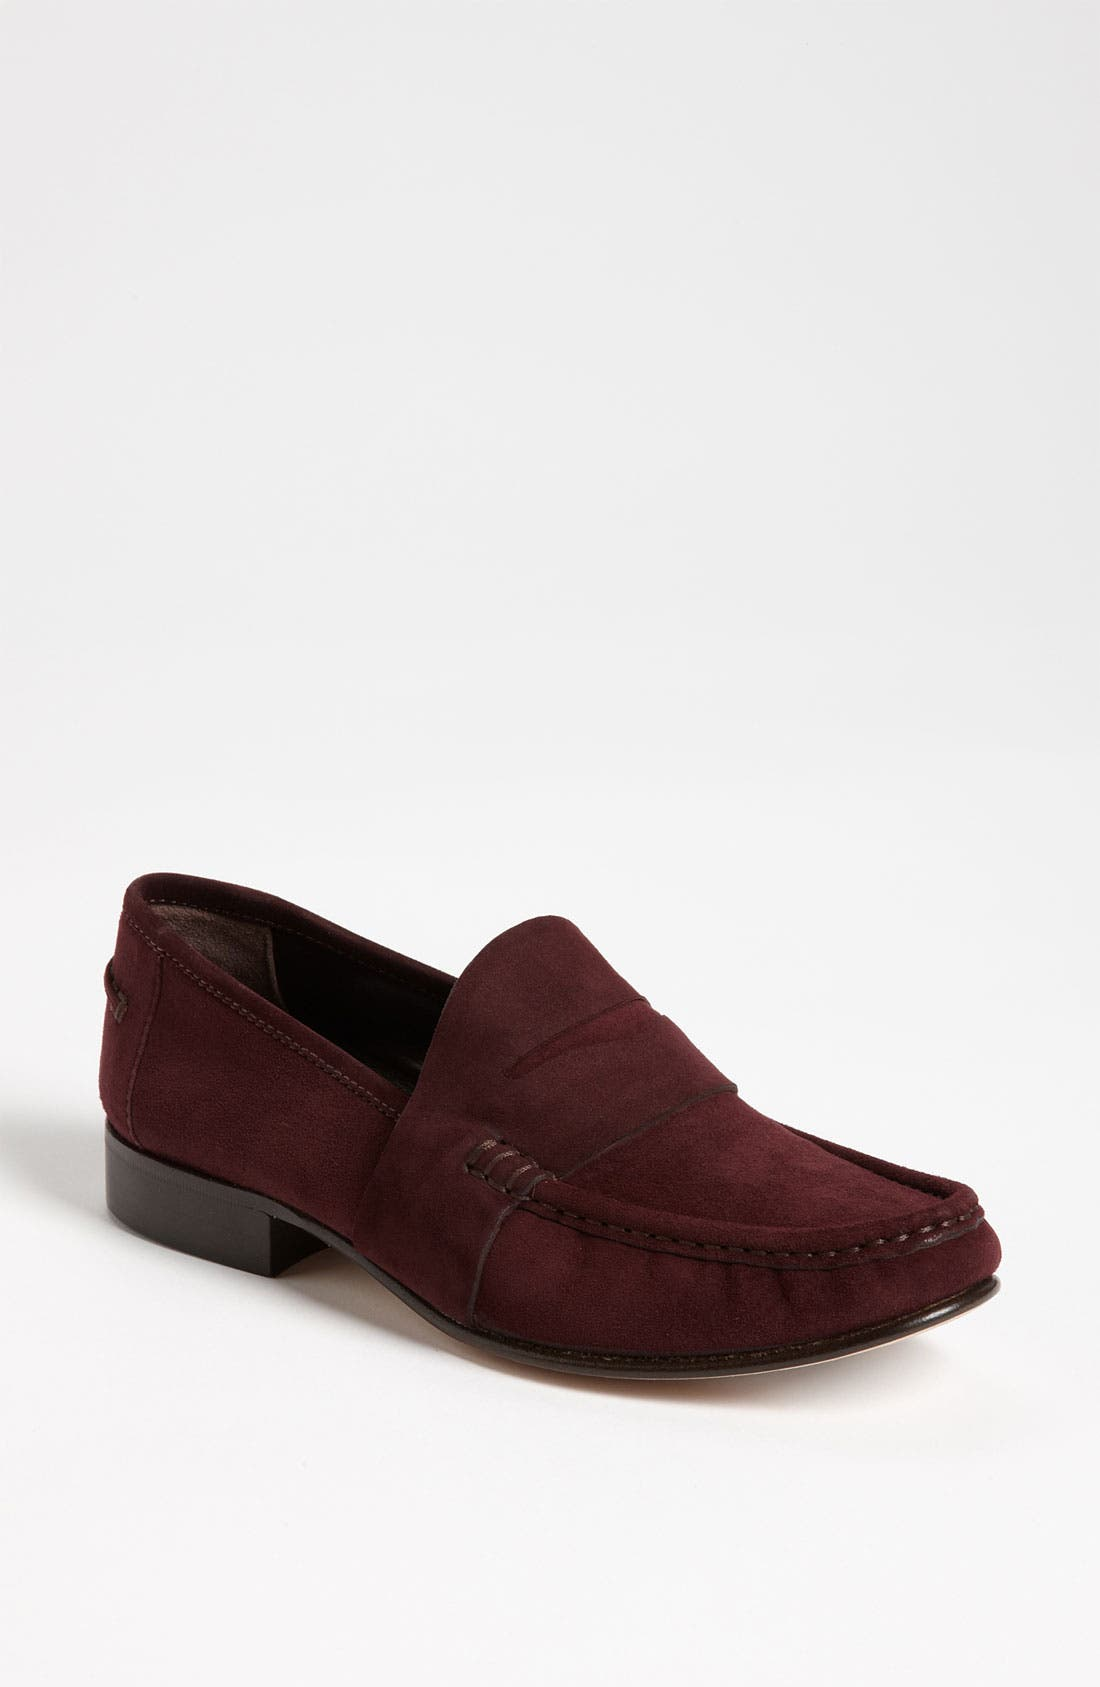 Alternate Image 1 Selected - Vera Wang Footwear 'Audrey' Loafer